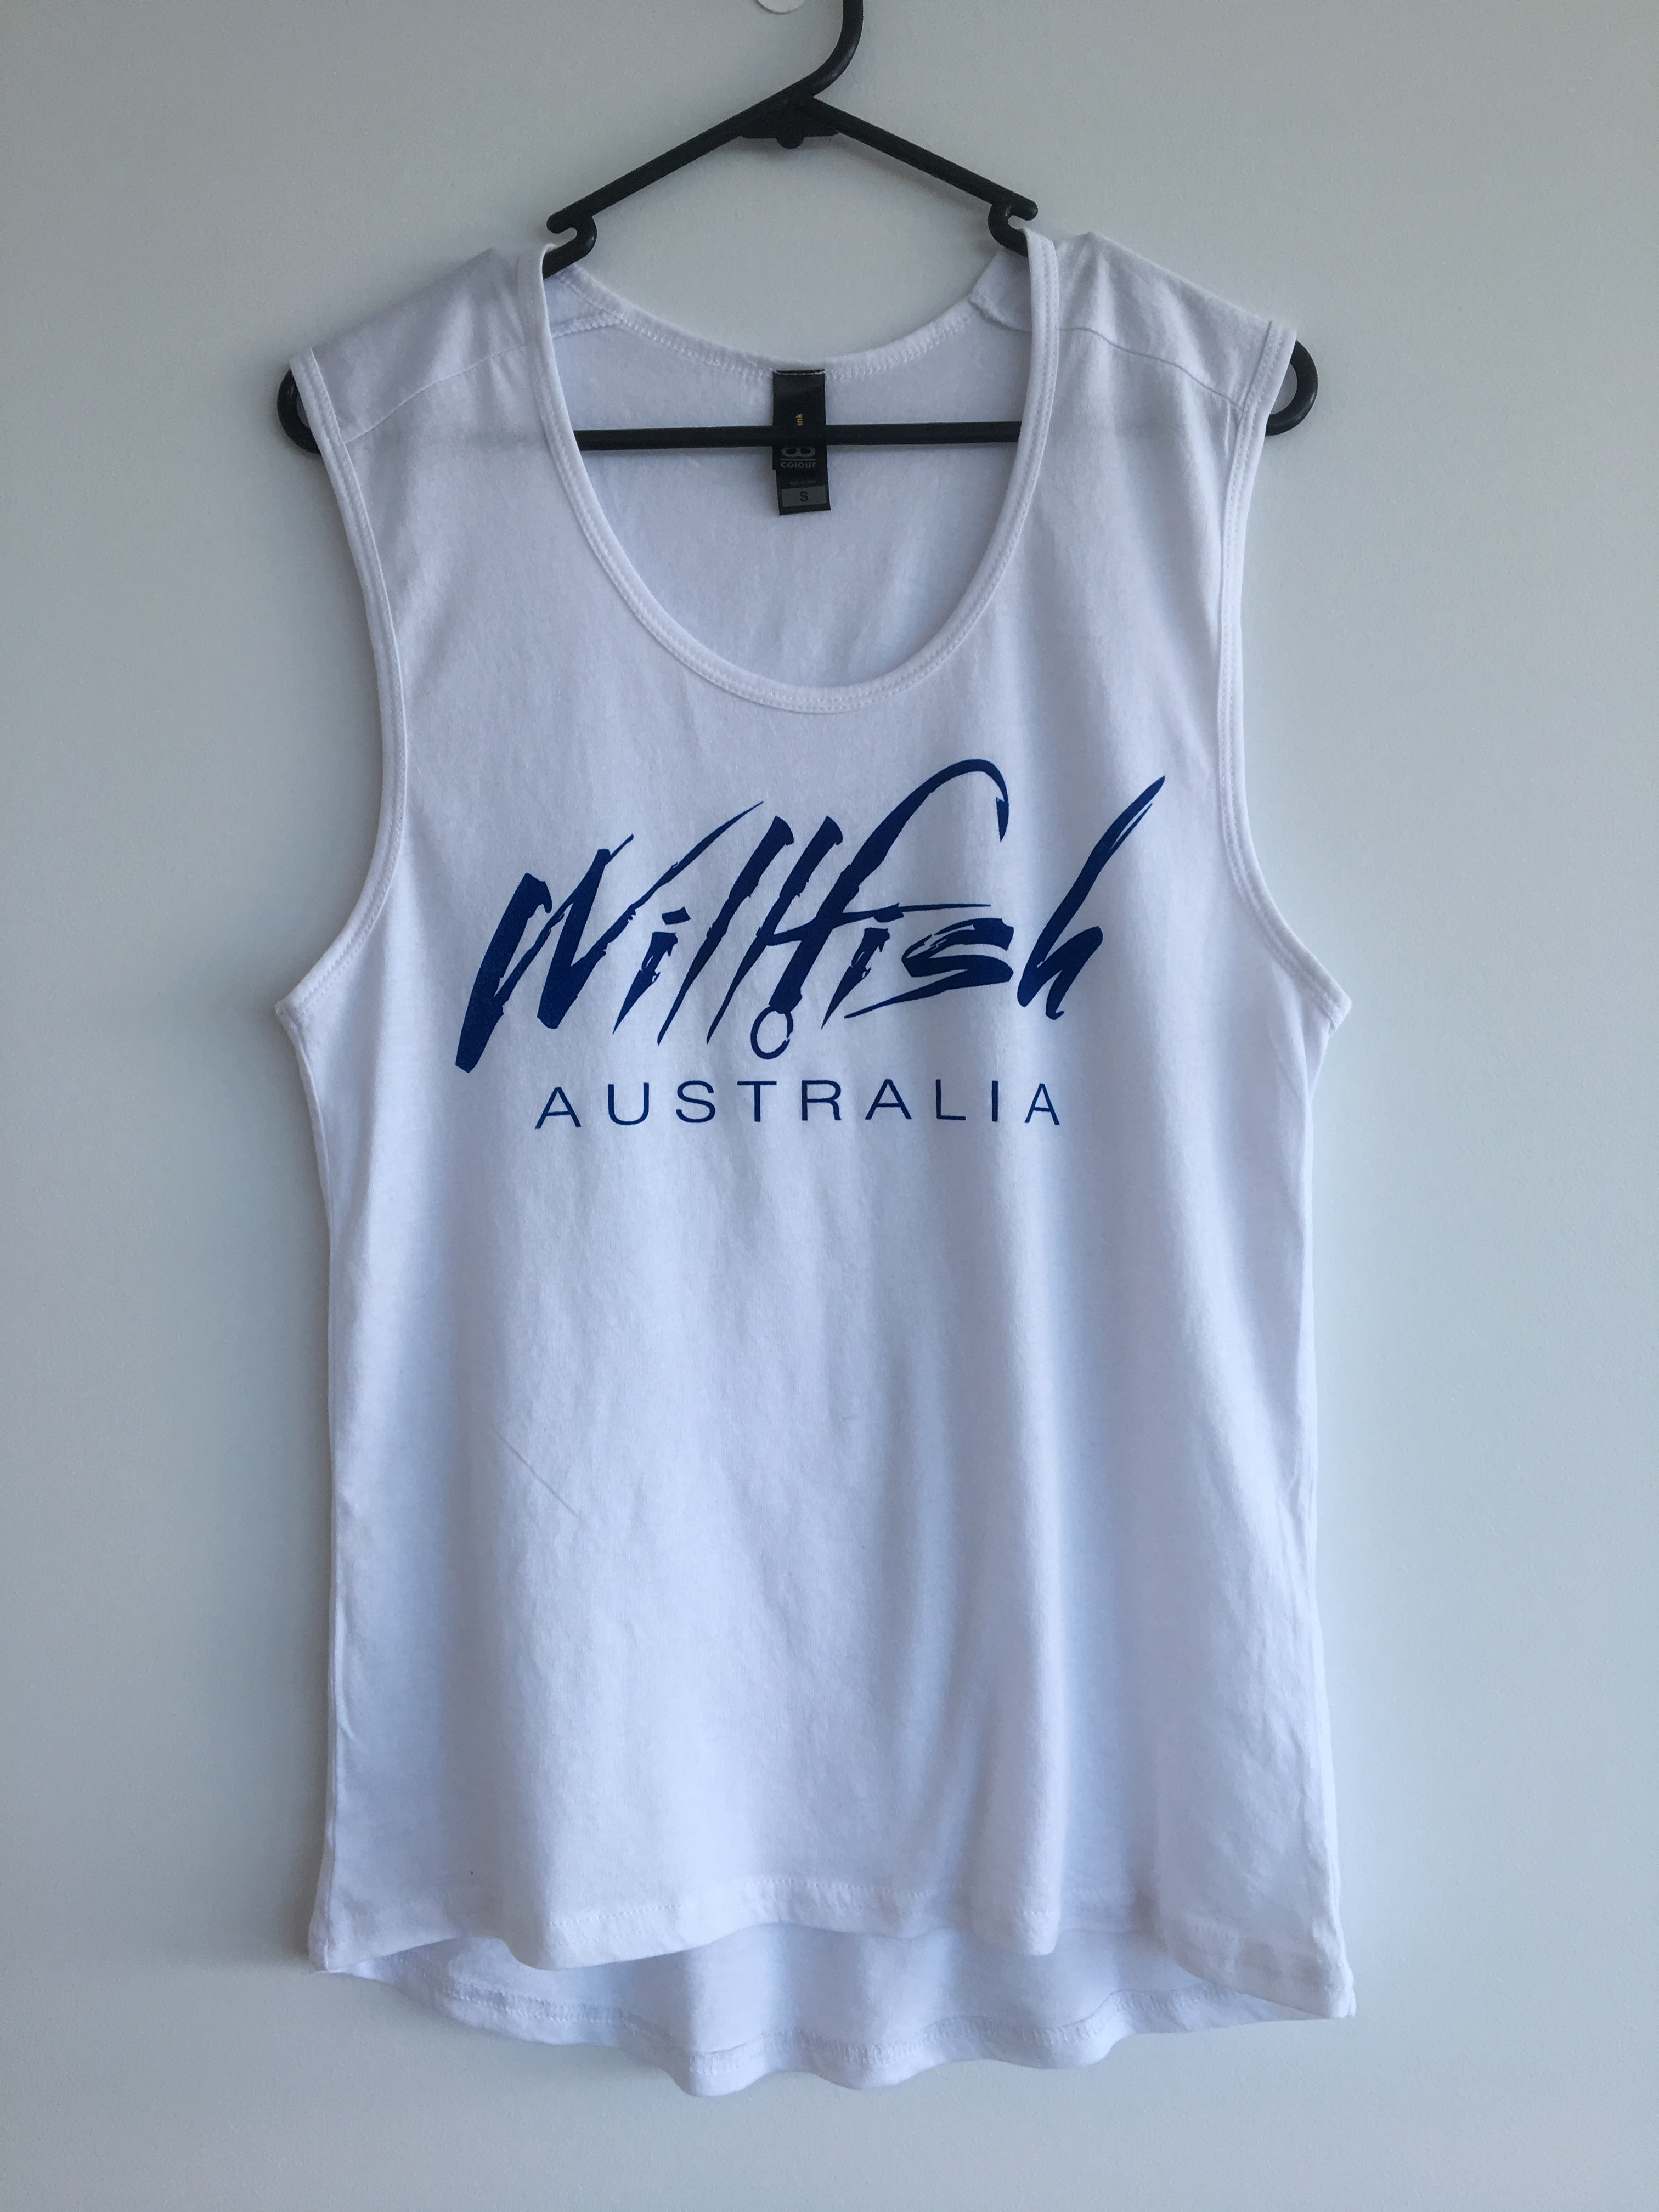 Willfish Clothing & Apparel